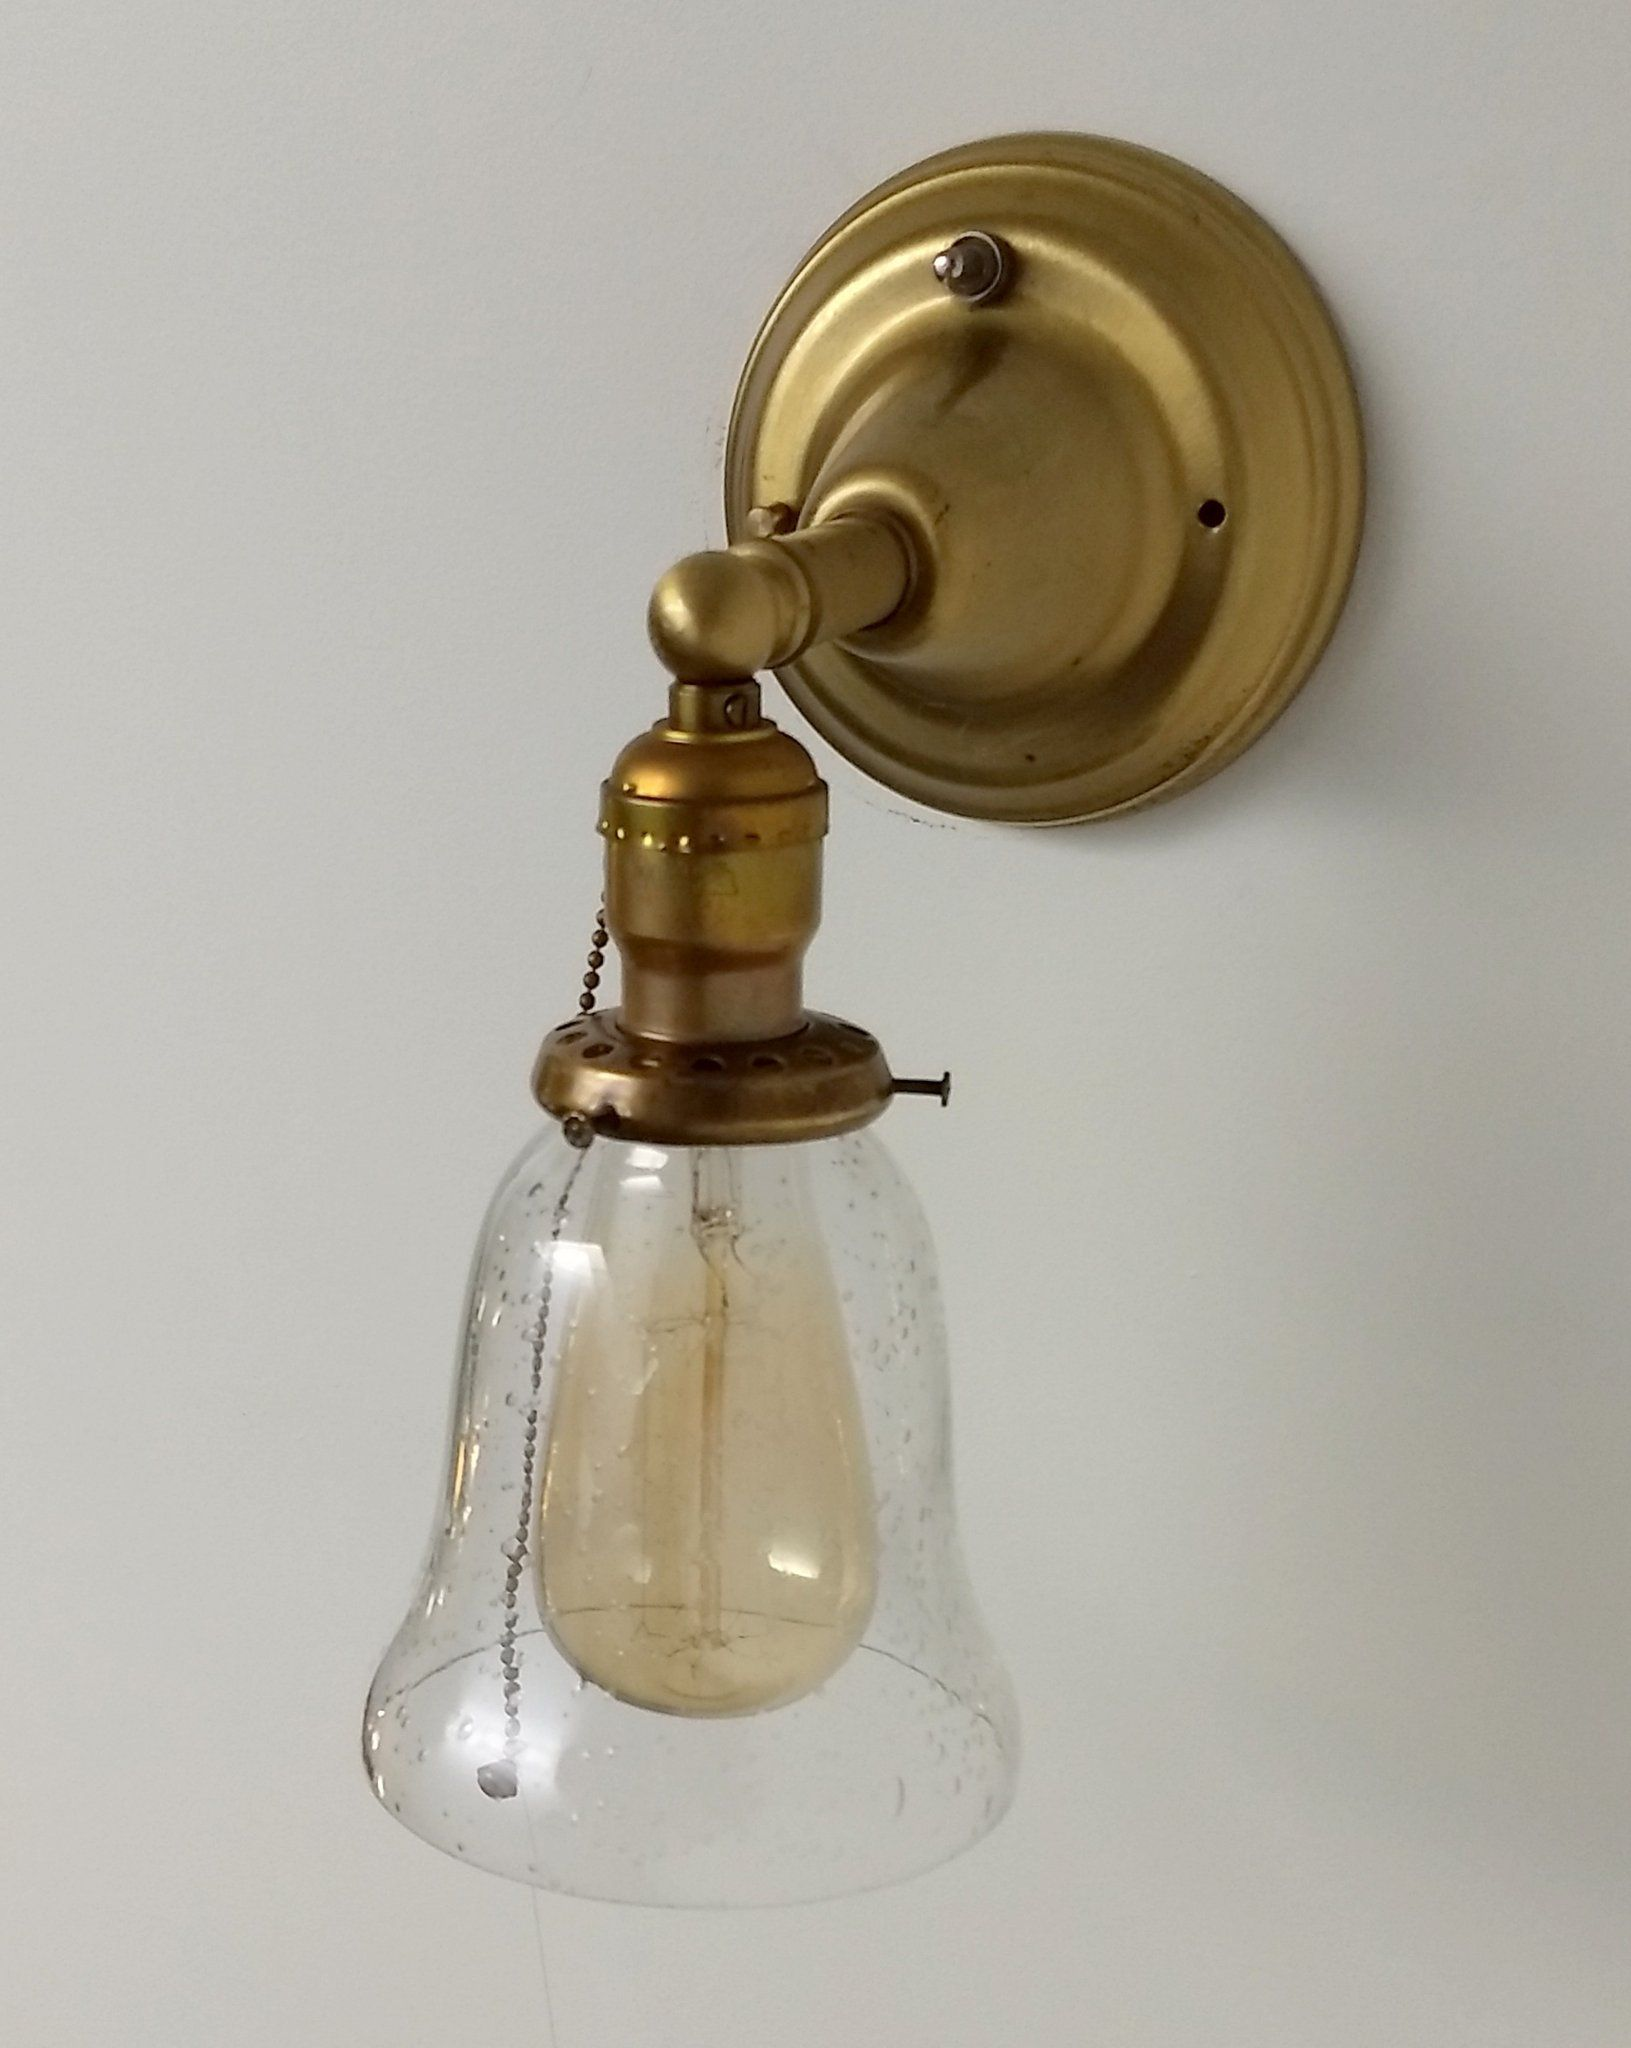 Vintage Wall Light Fixture